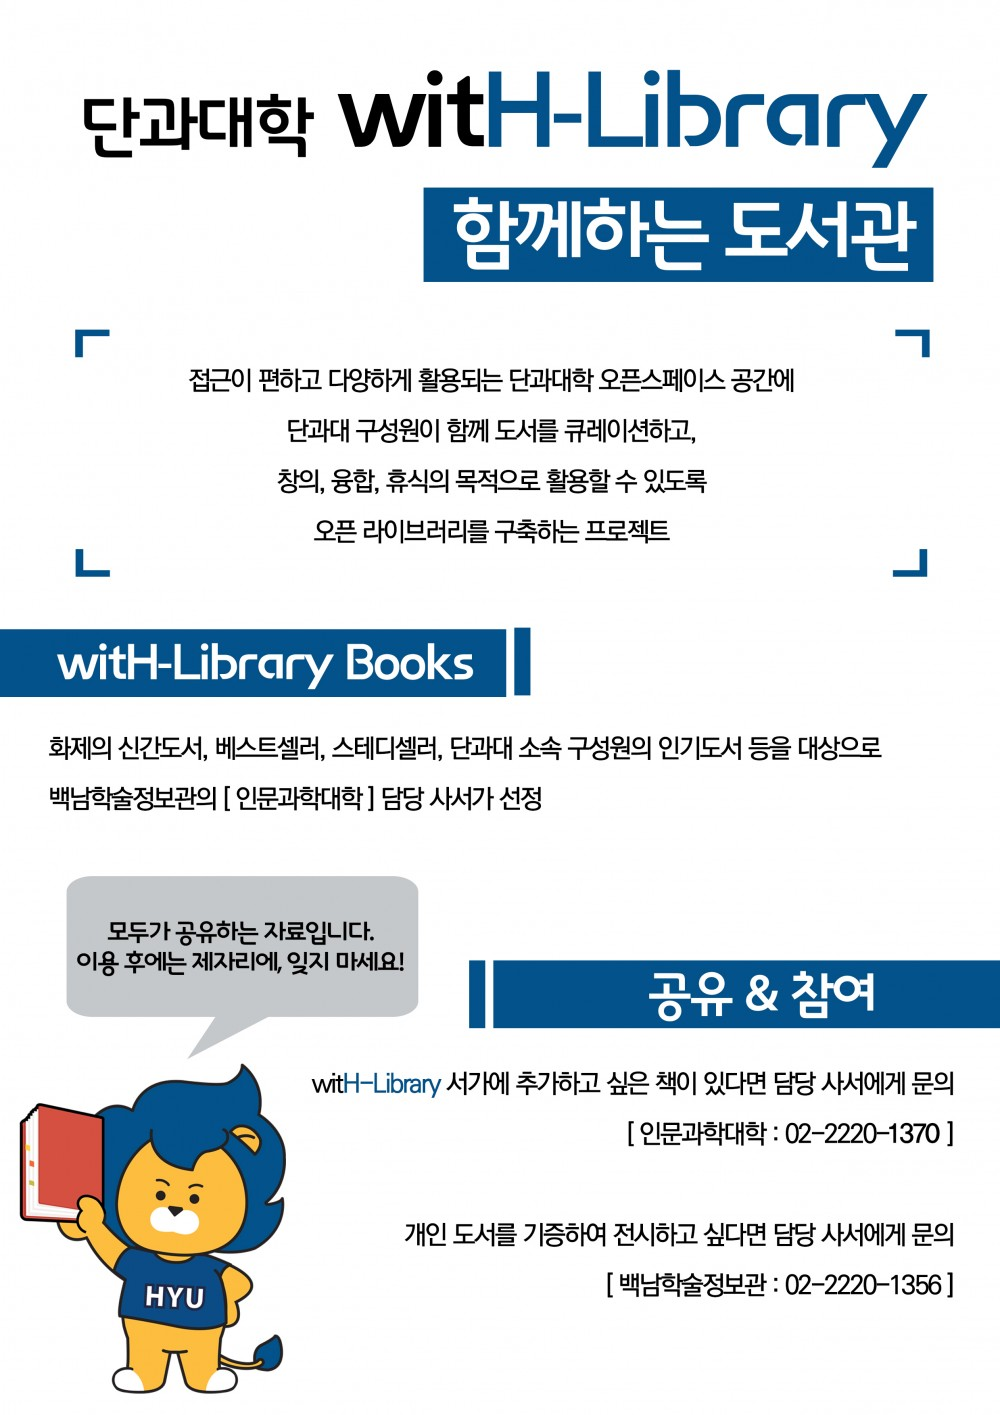 witH-Library 안내문(A4 사이즈) 예시